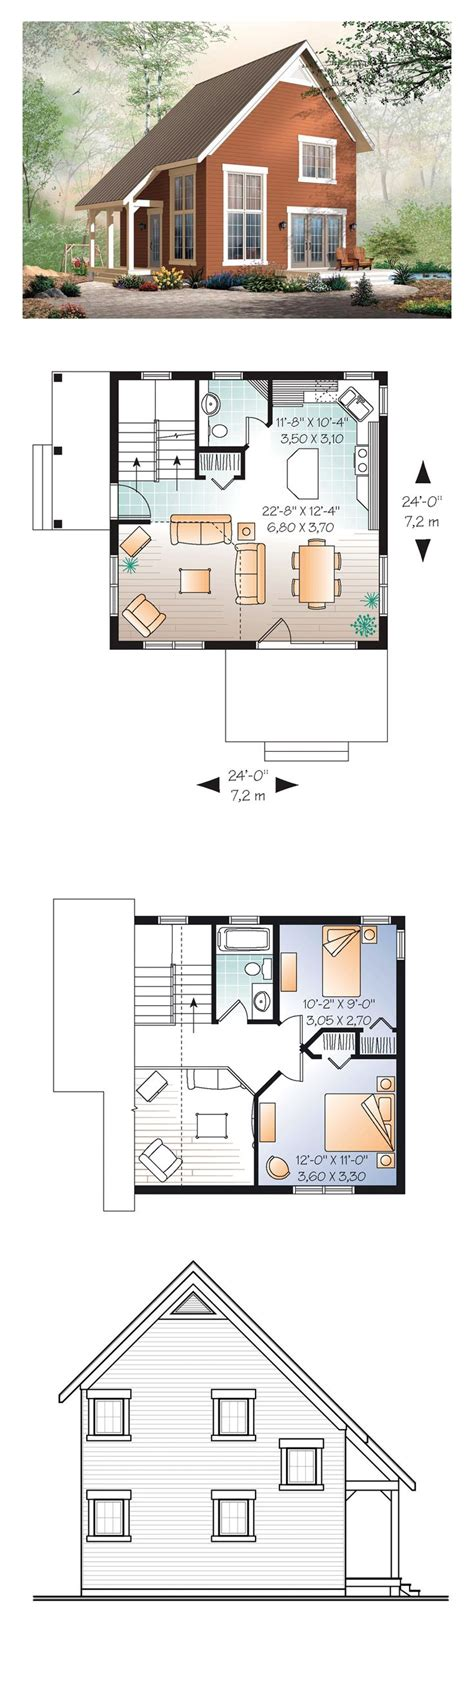 narrow sloping lot house plans single level living narrow lot house plan 76149 total living area 1050 sq ft 2 bedrooms and 1 5 bathrooms